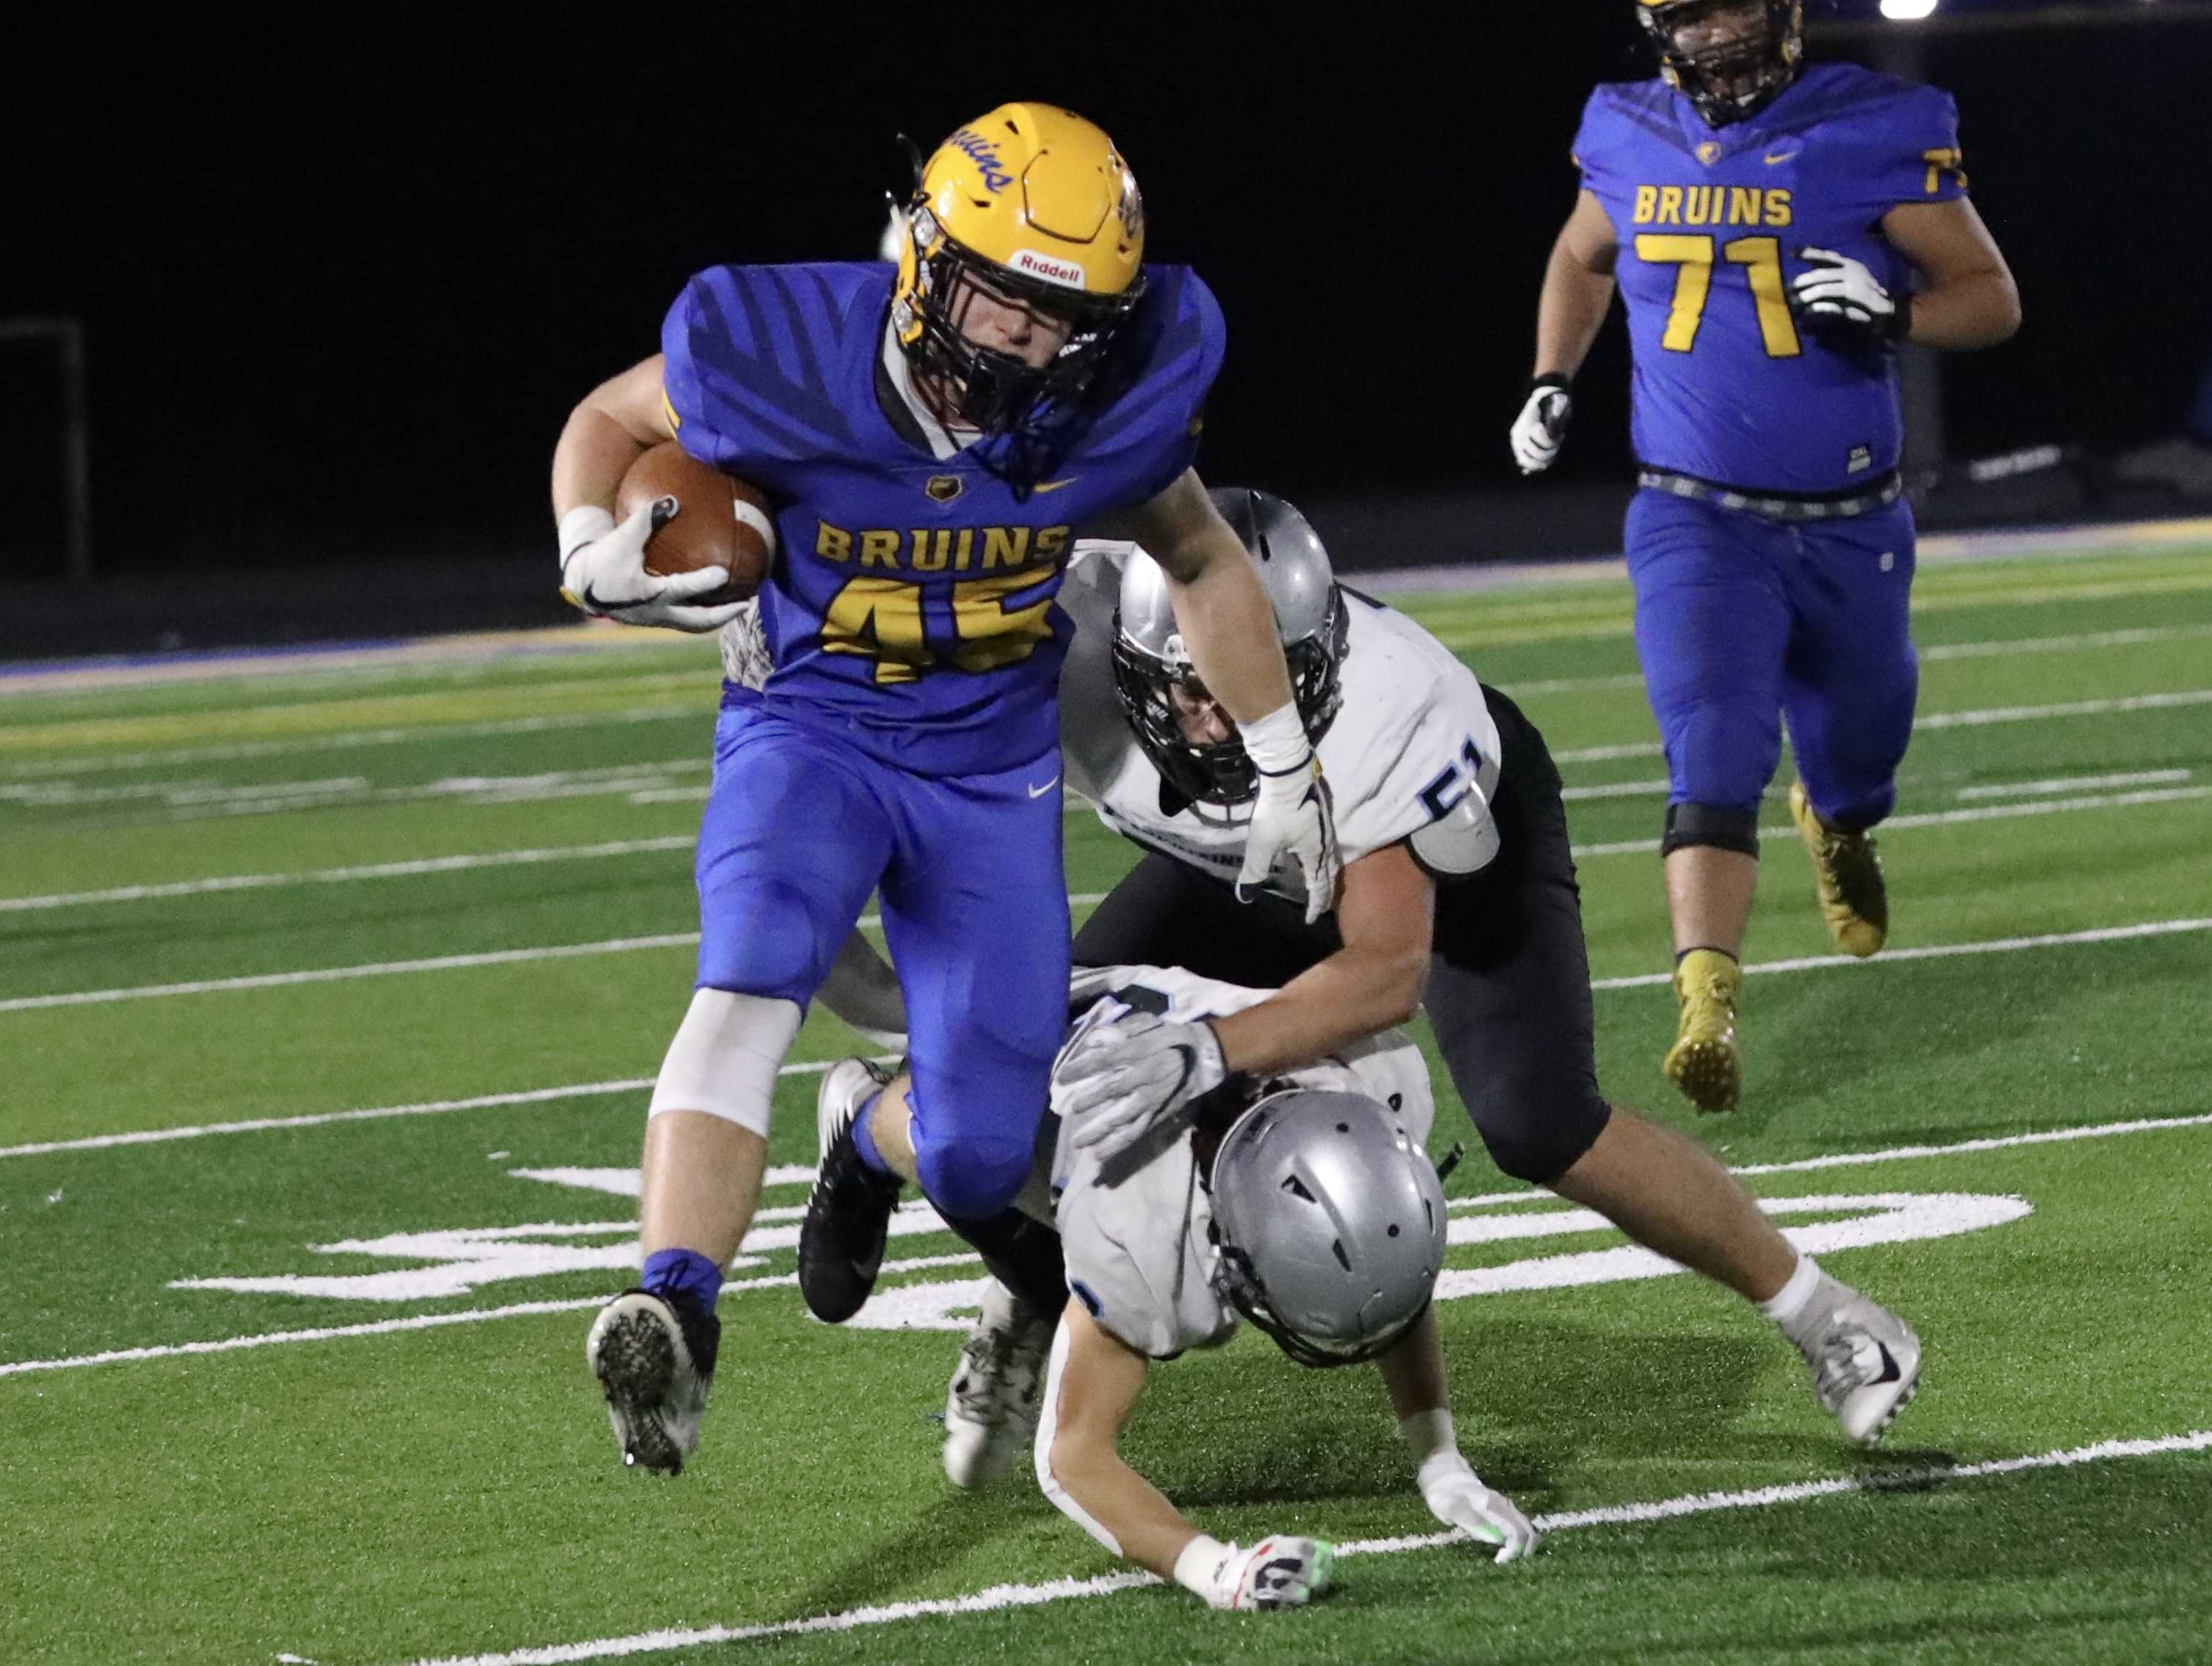 Barlow's Andrew Collins evades two Mountainside tacklers on his way to a 40-yard run on a screen pass. (Norm Maves Jr.)